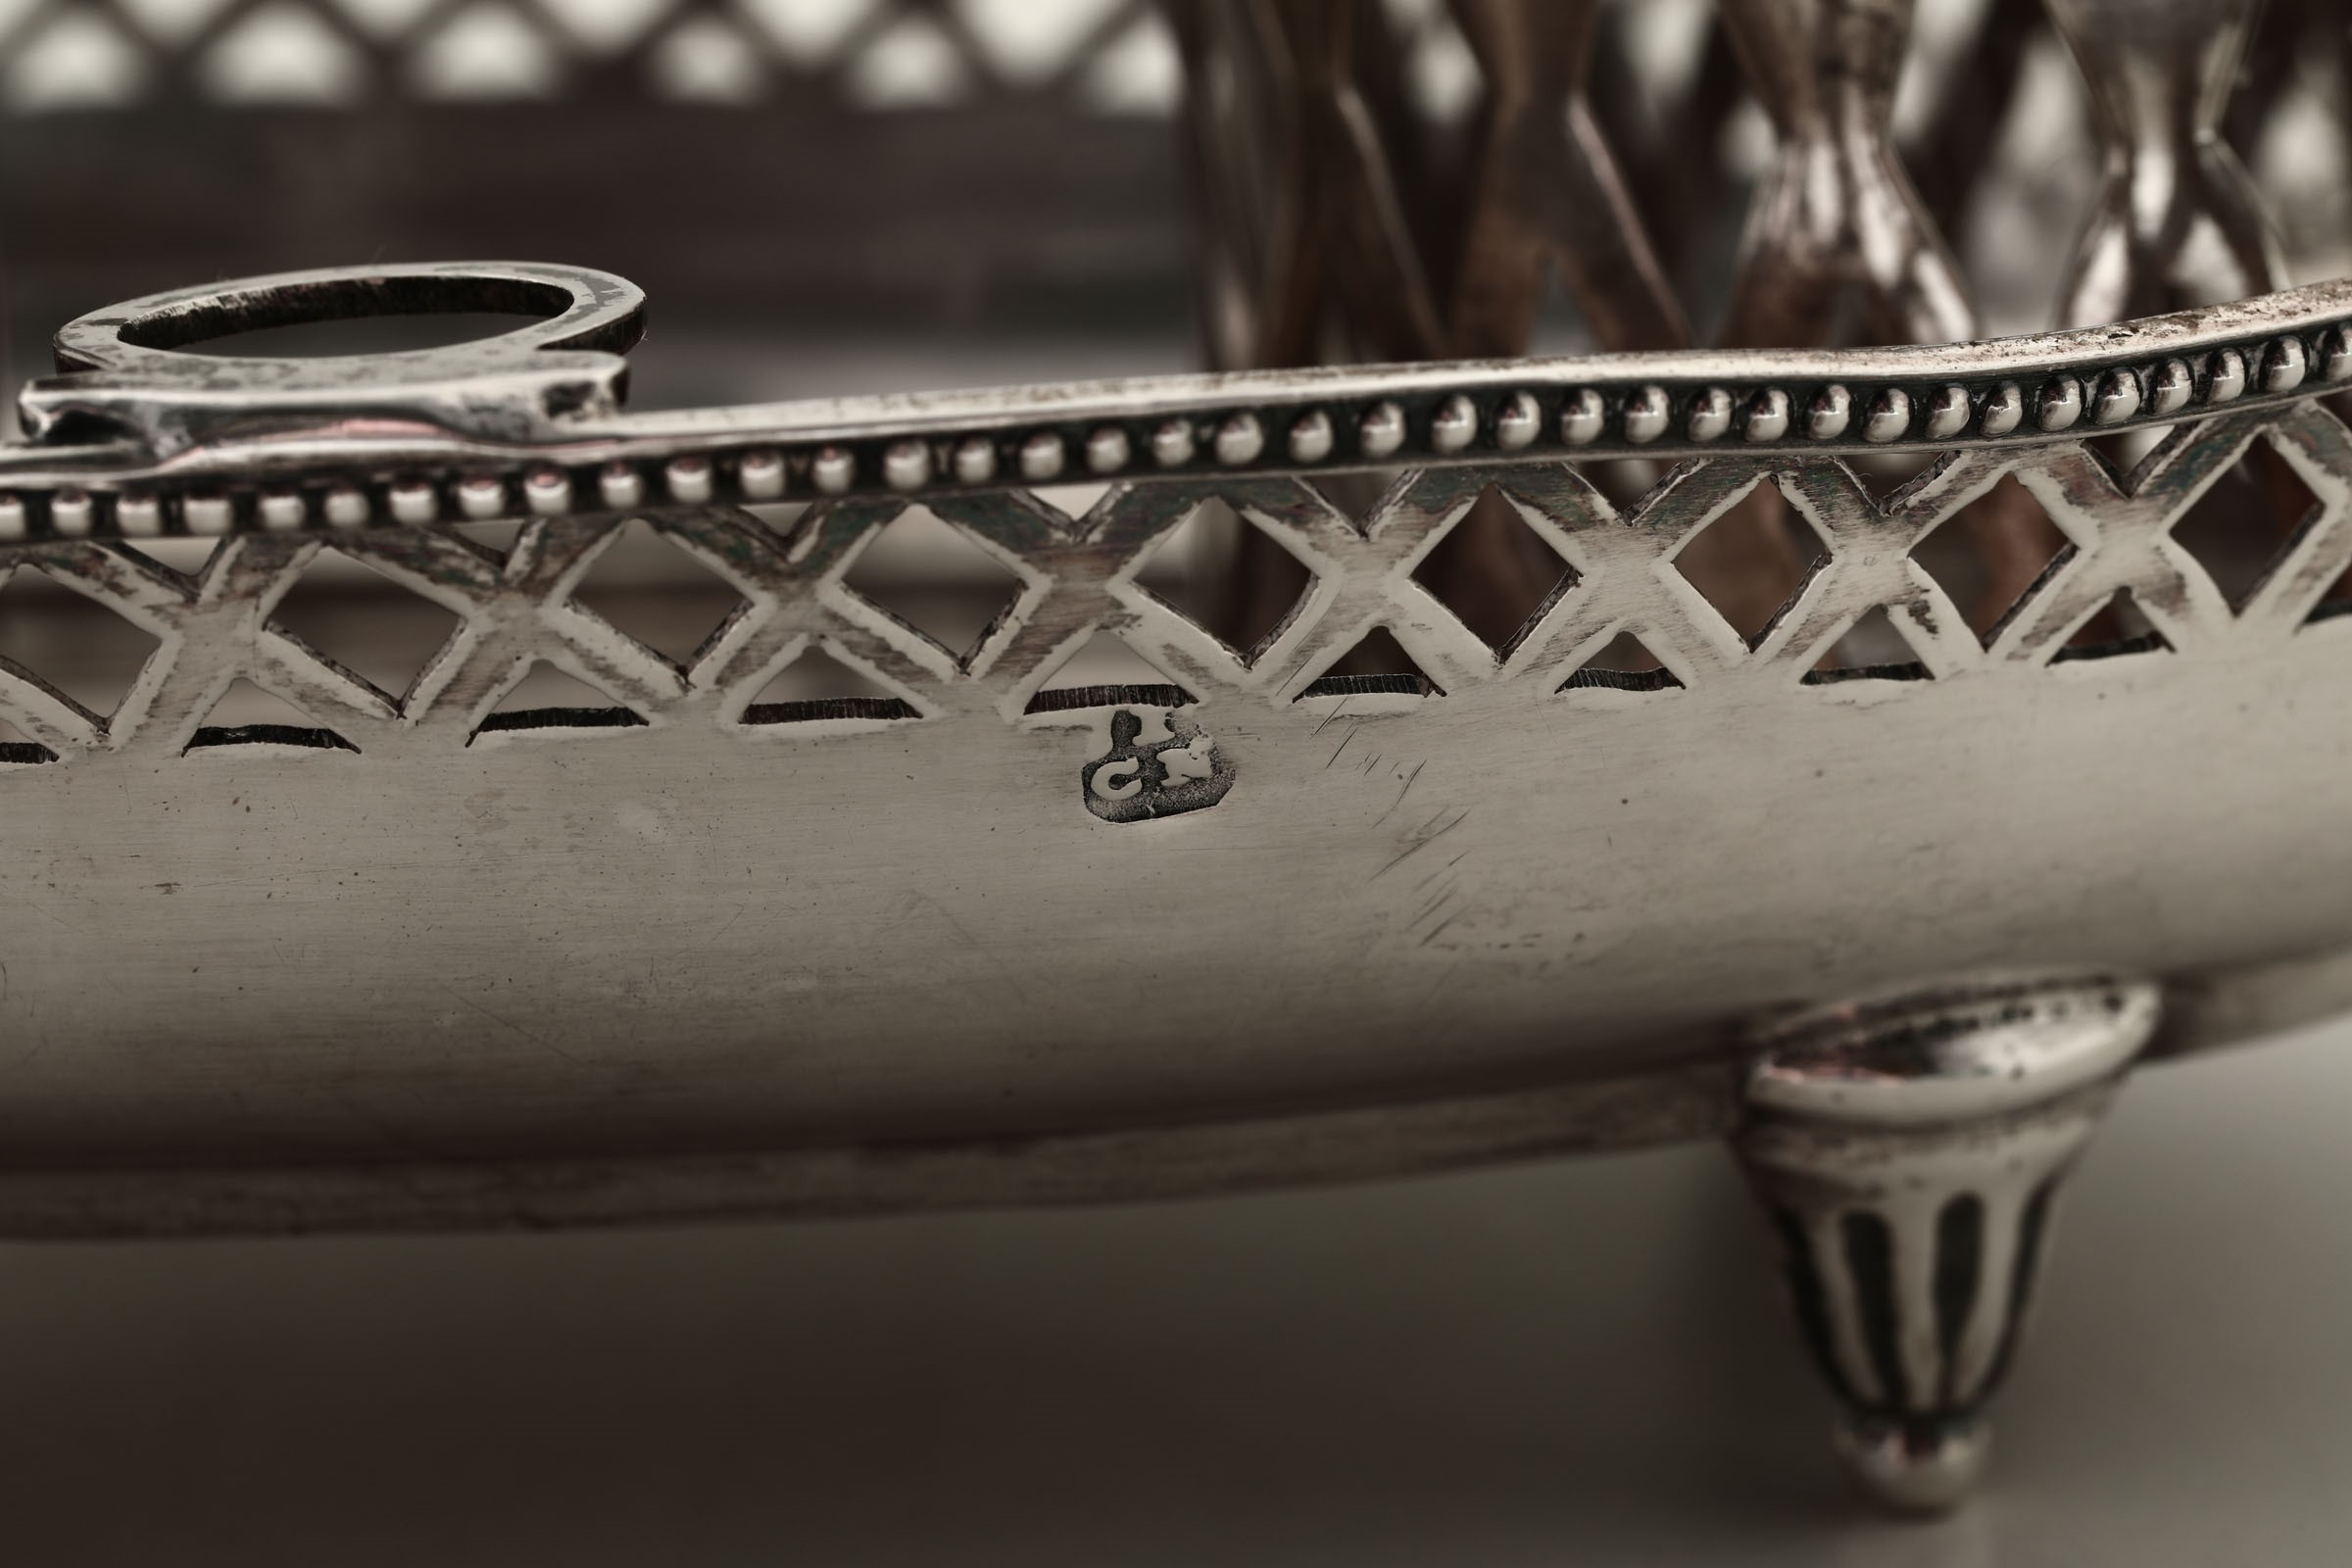 Lot 51 - A silver cruet stand, Germany, 1700s - Molten, embossed, perforated and chiselled [...]